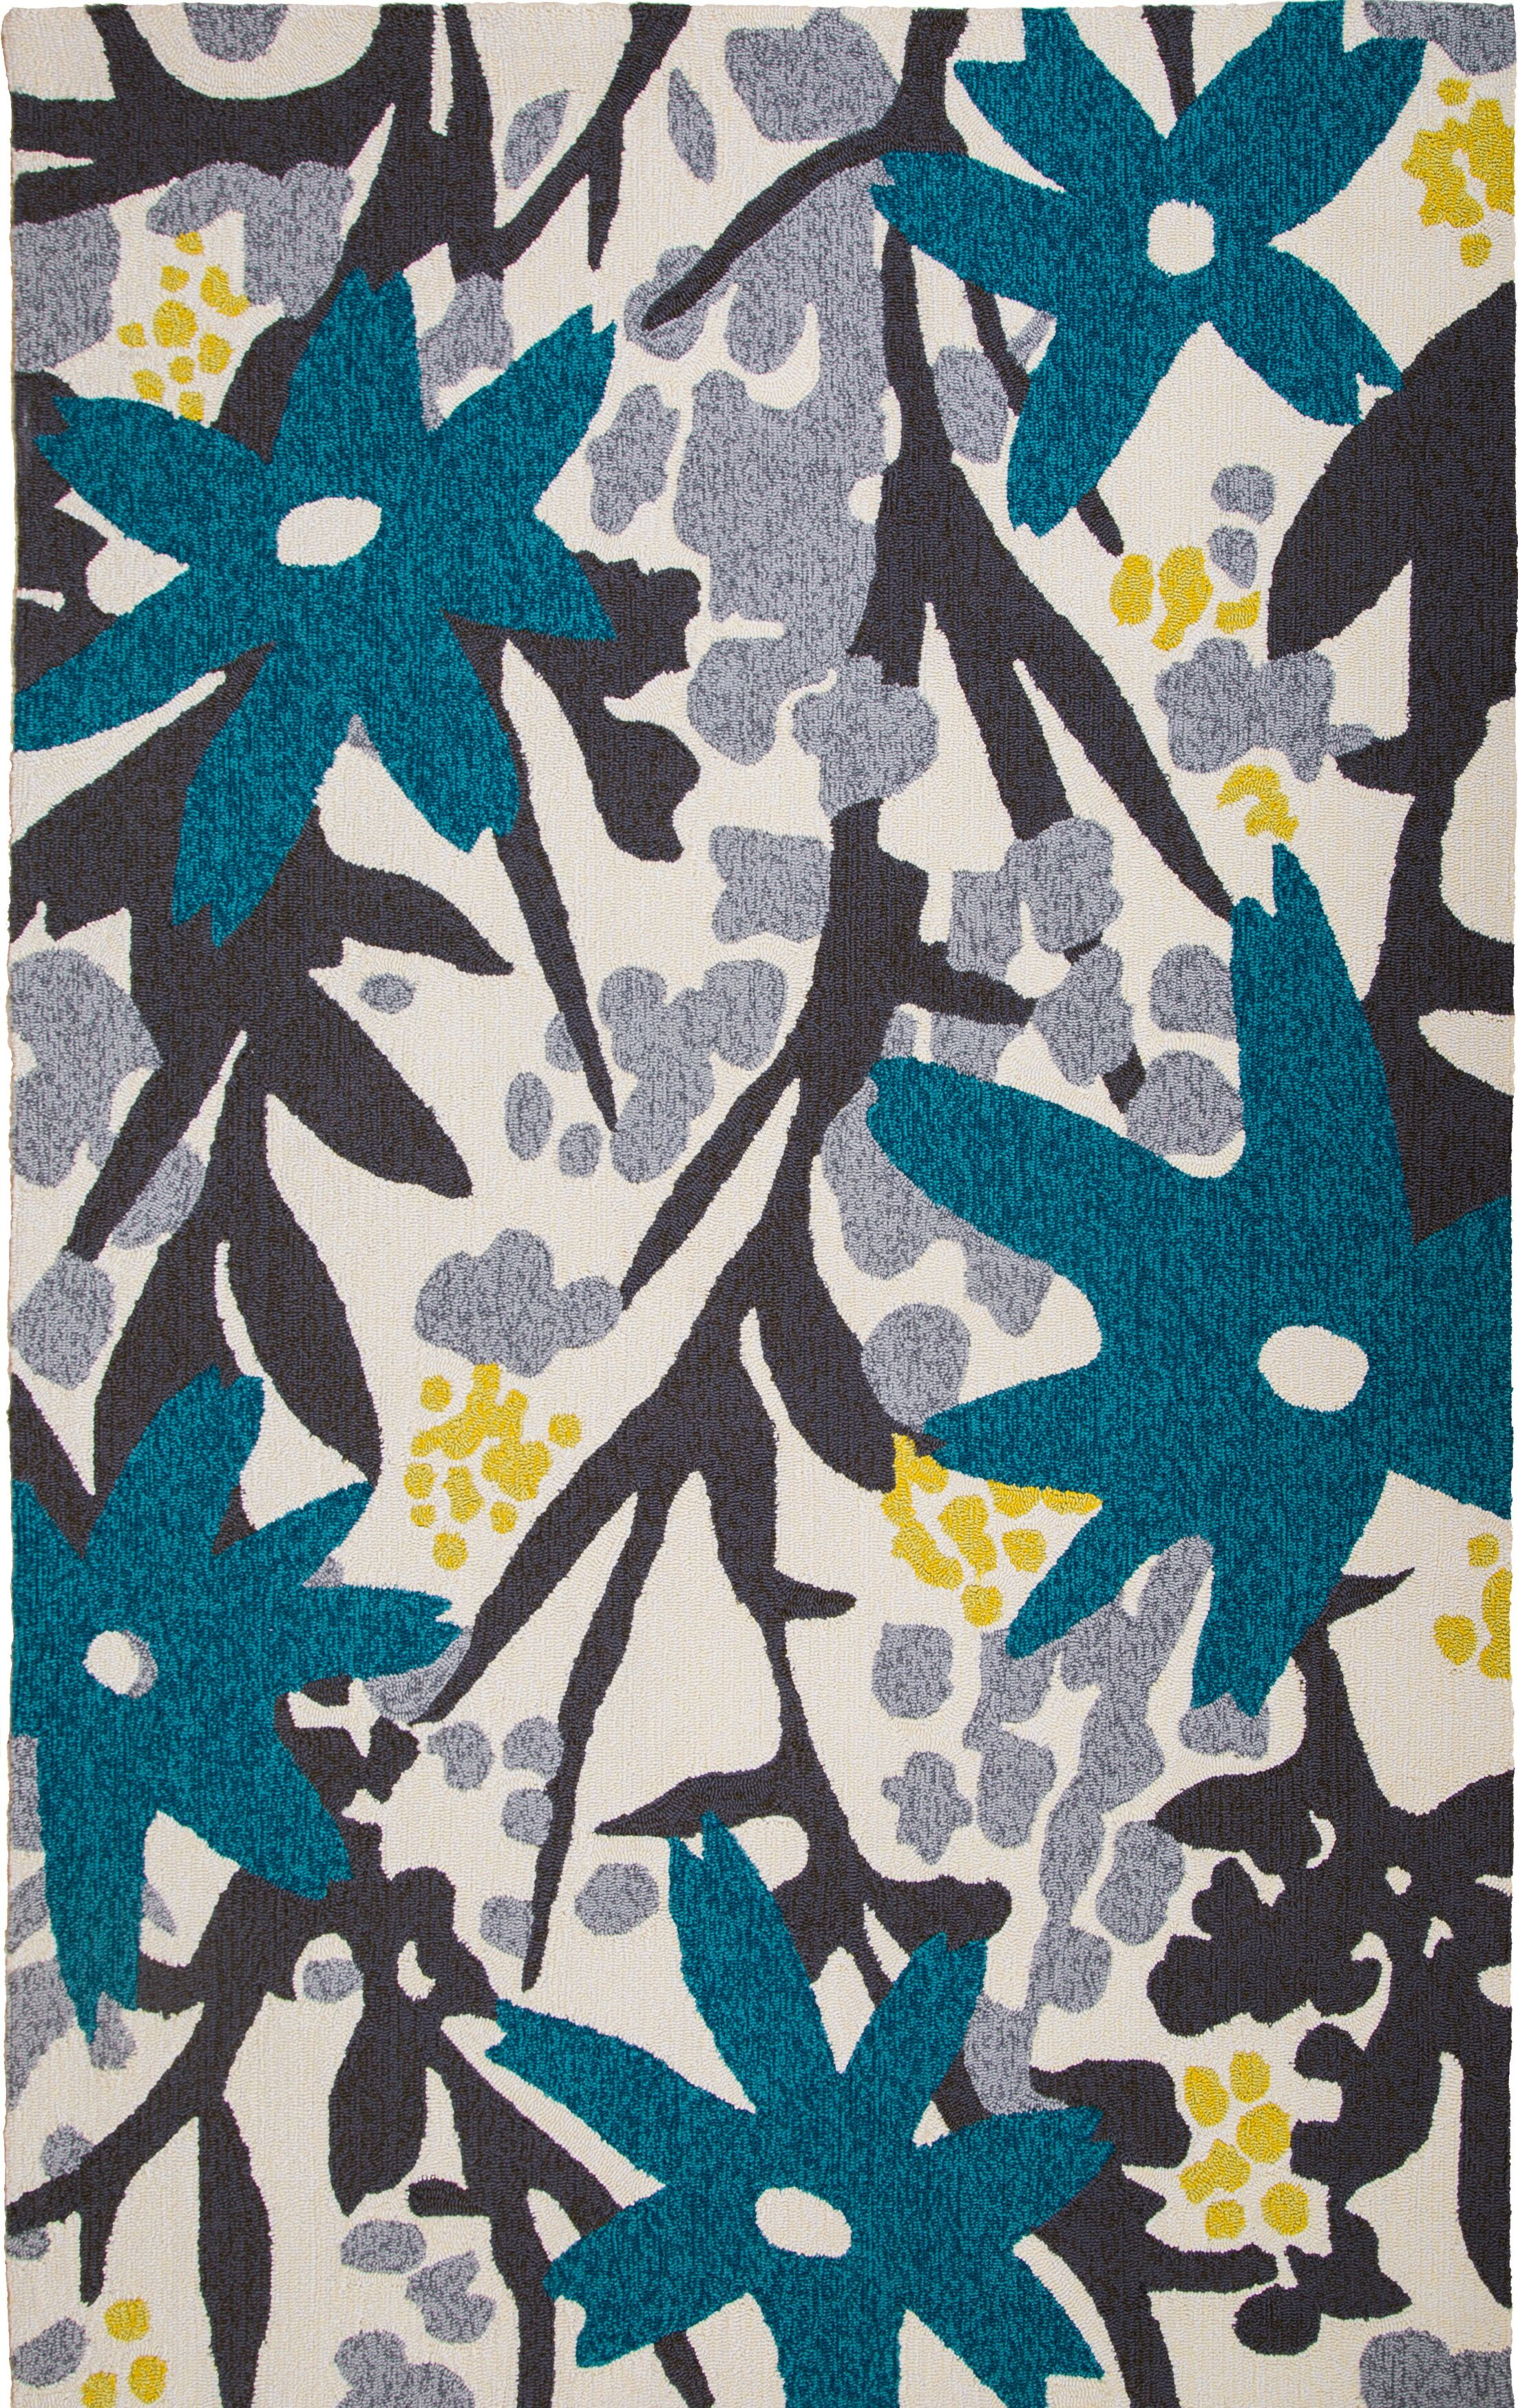 Bloom Hand-Tufted Turquoise Indoor/Outdoor Area Rug Rug Size: 5' x 8'